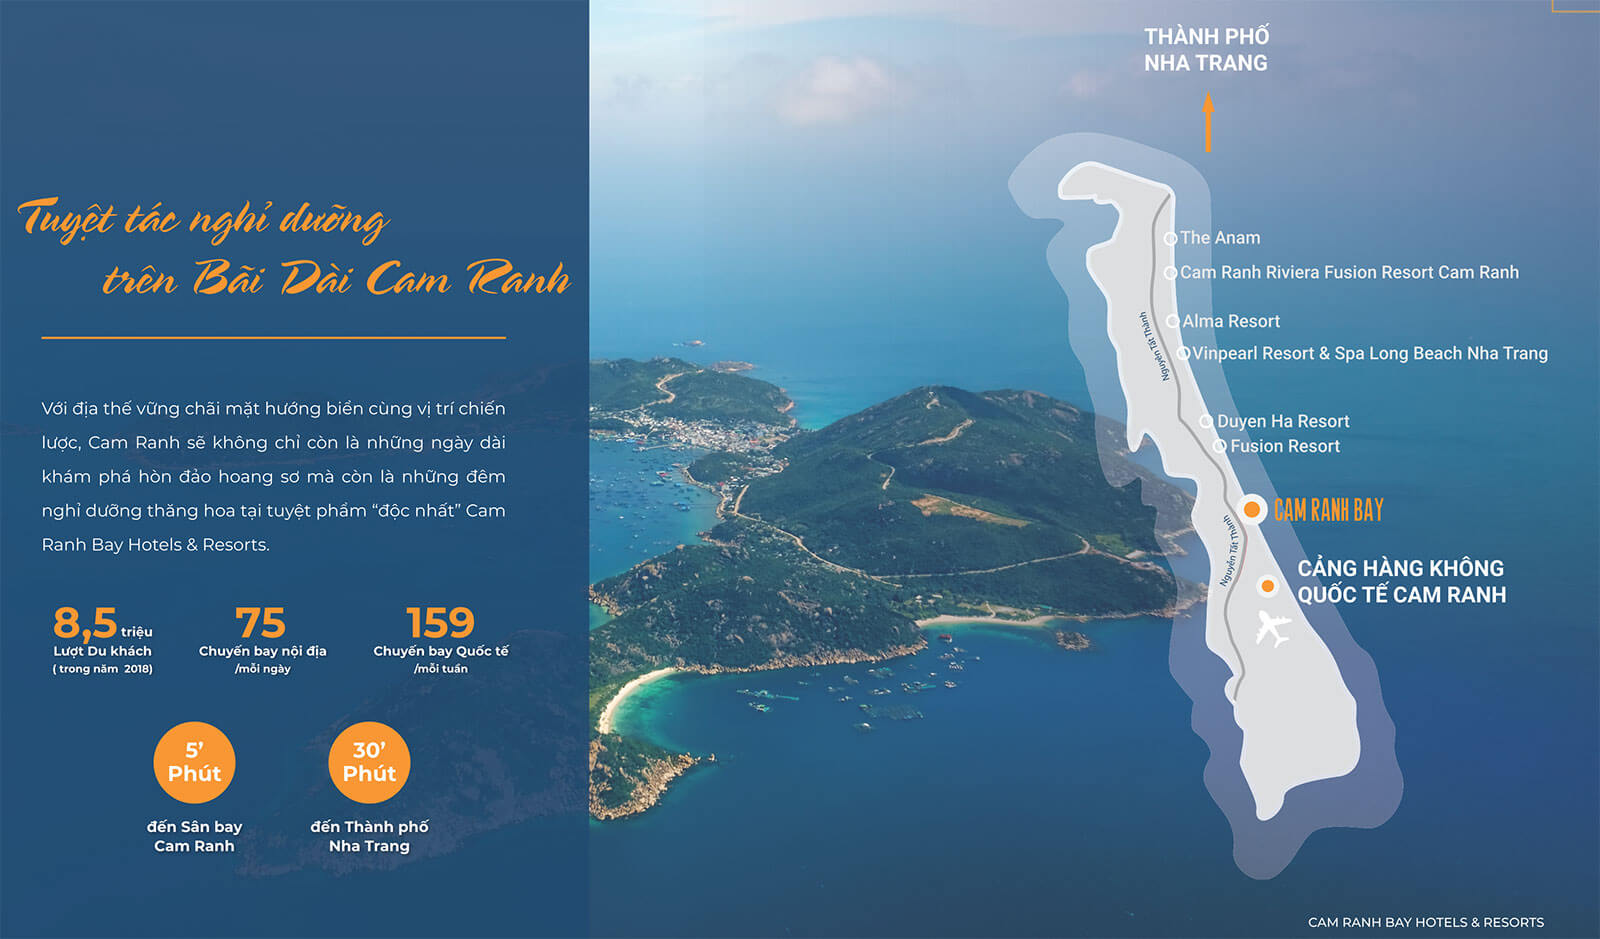 Cam Ranh Bay Hotels & Resorts